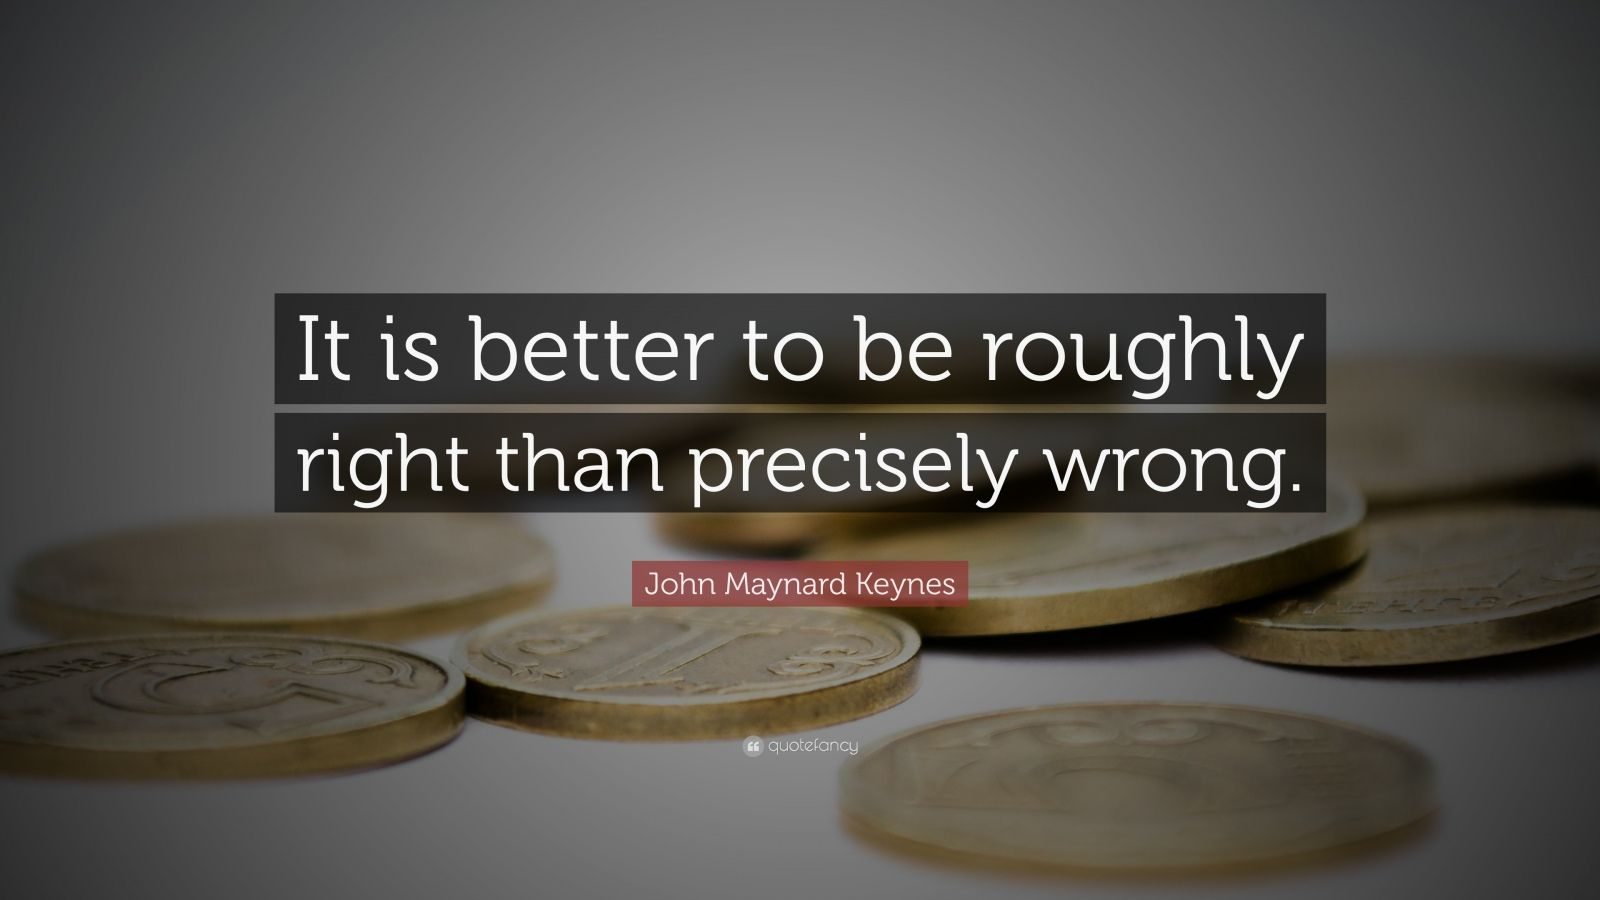 """John Maynard Keynes Quote: """"It is better to be roughly right than precisely wrong."""""""